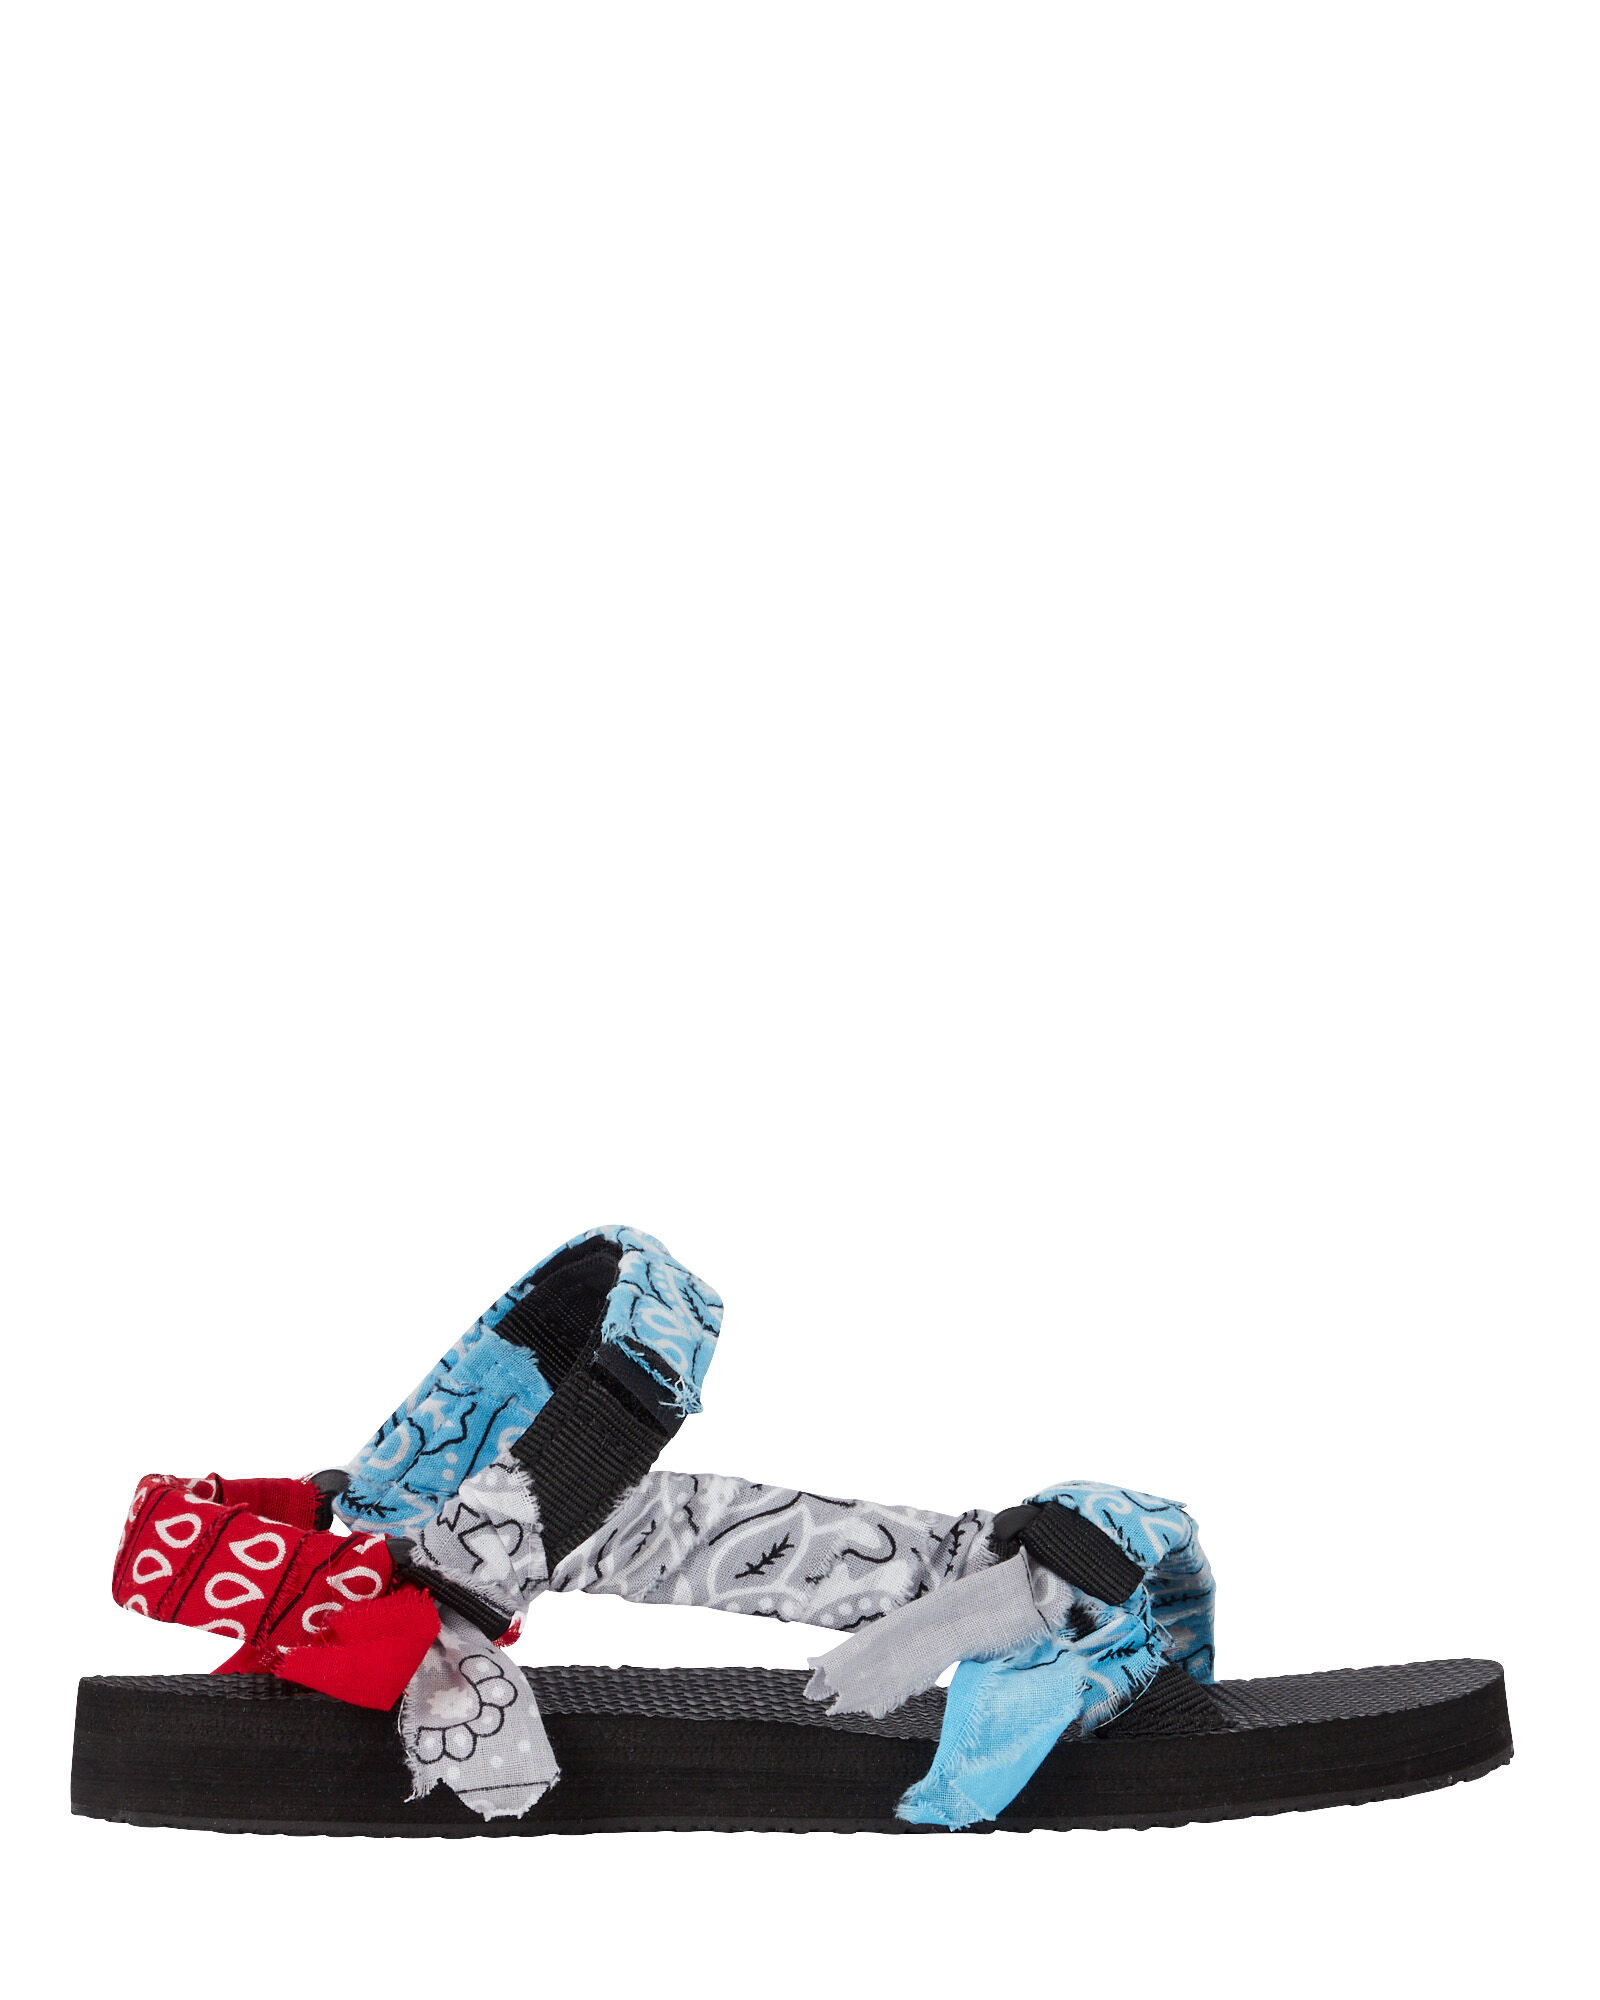 Trekky Bandana Knotted Sandals, MULTI, hi-res